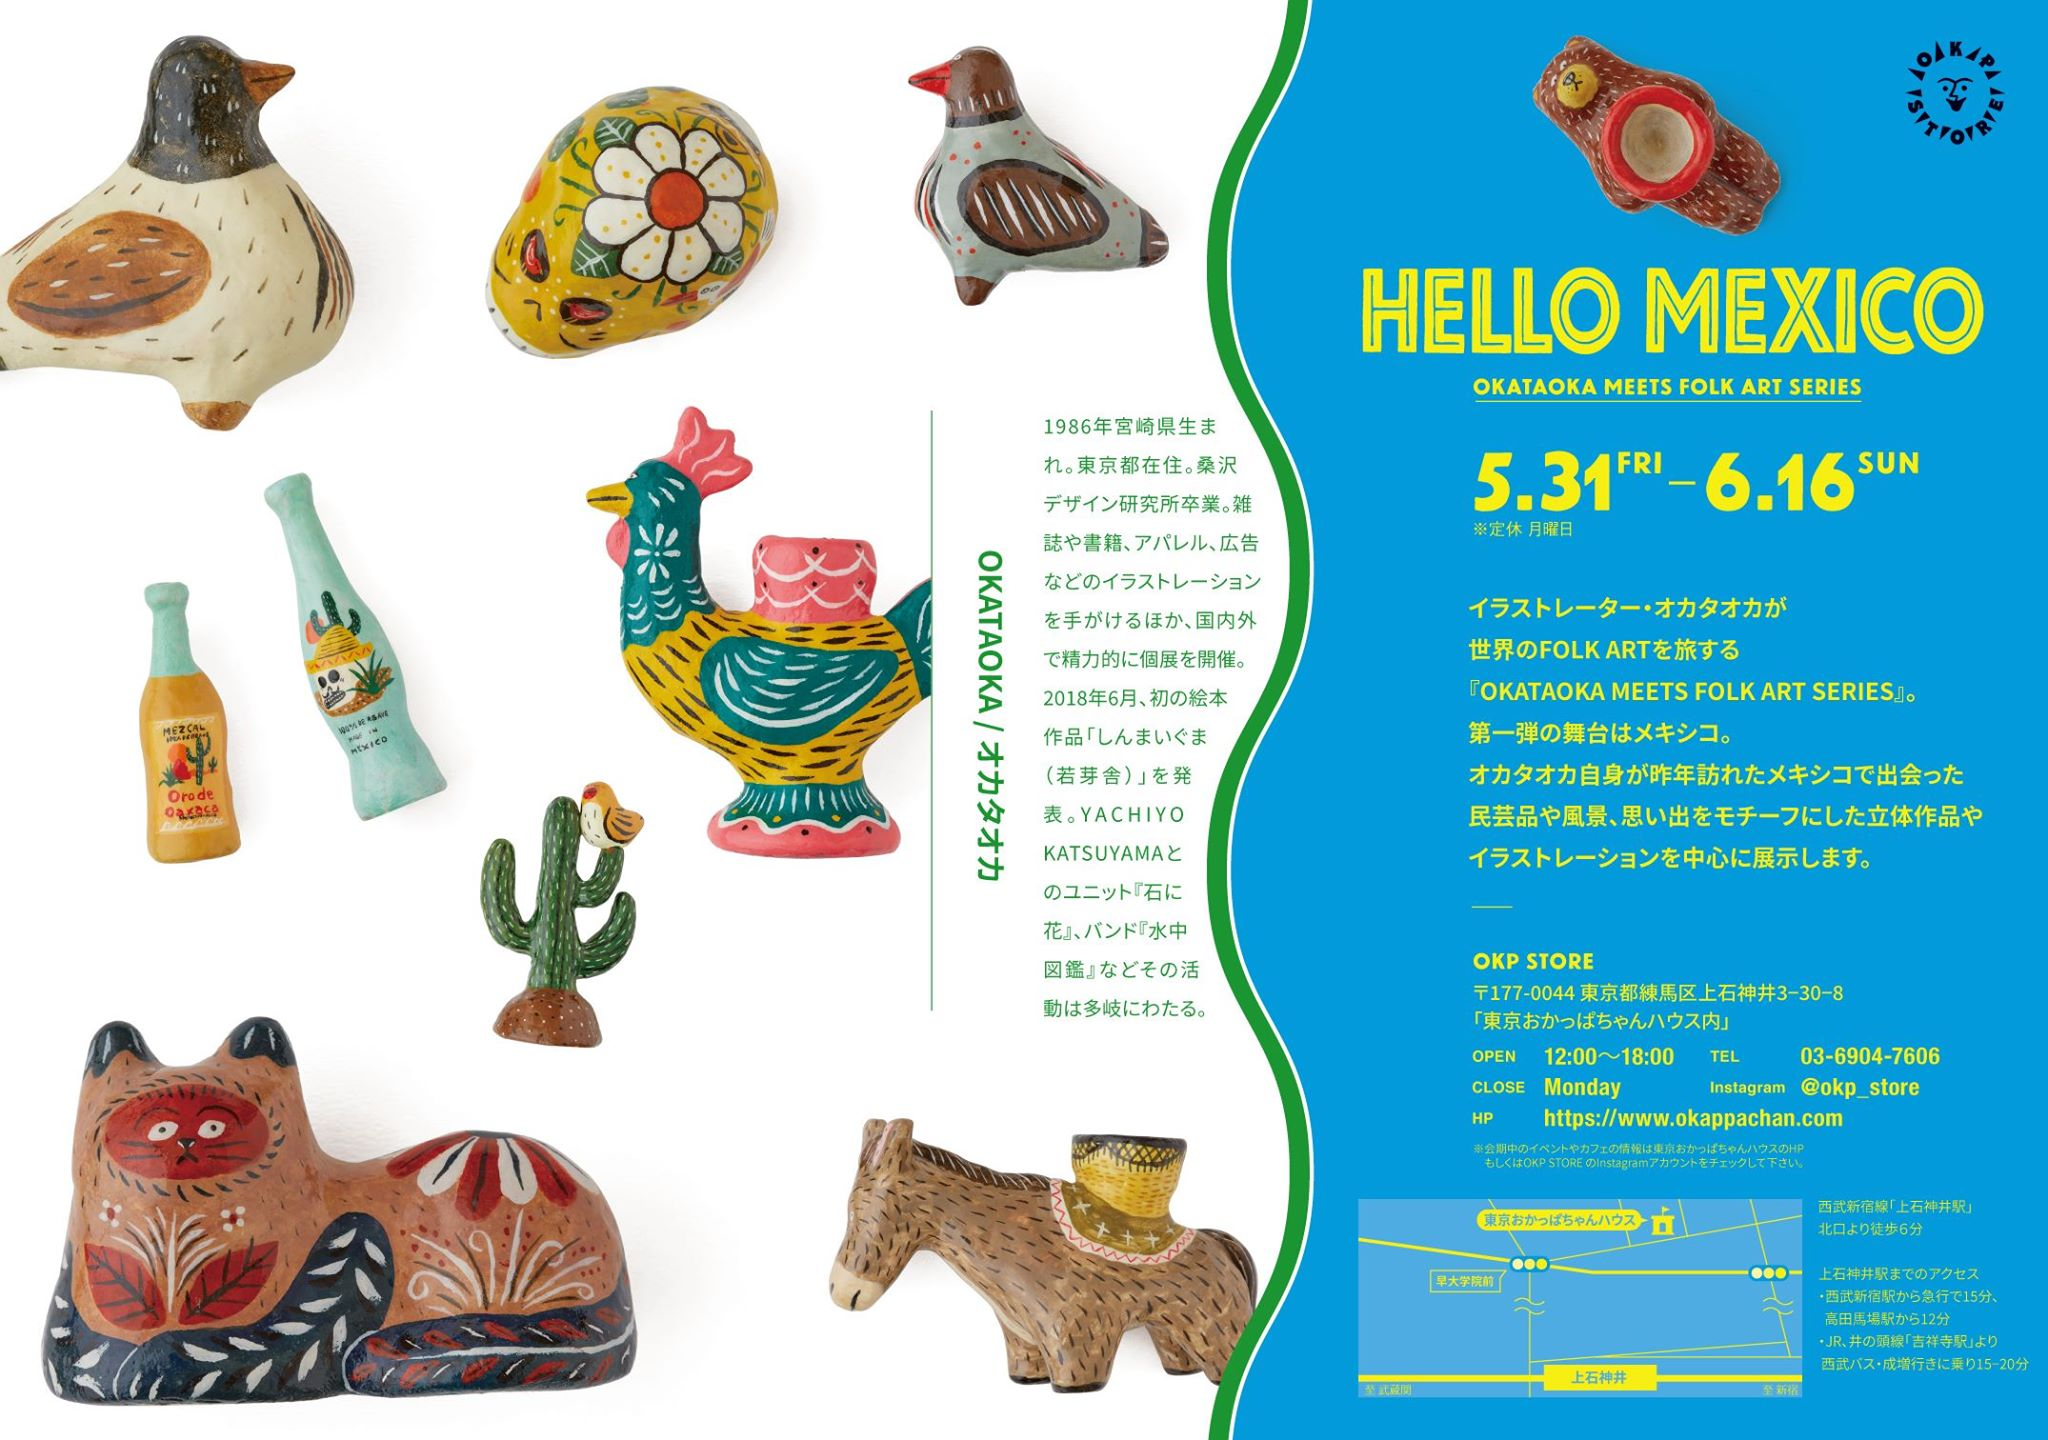 Okataoka Exhibition HELLO Mexico